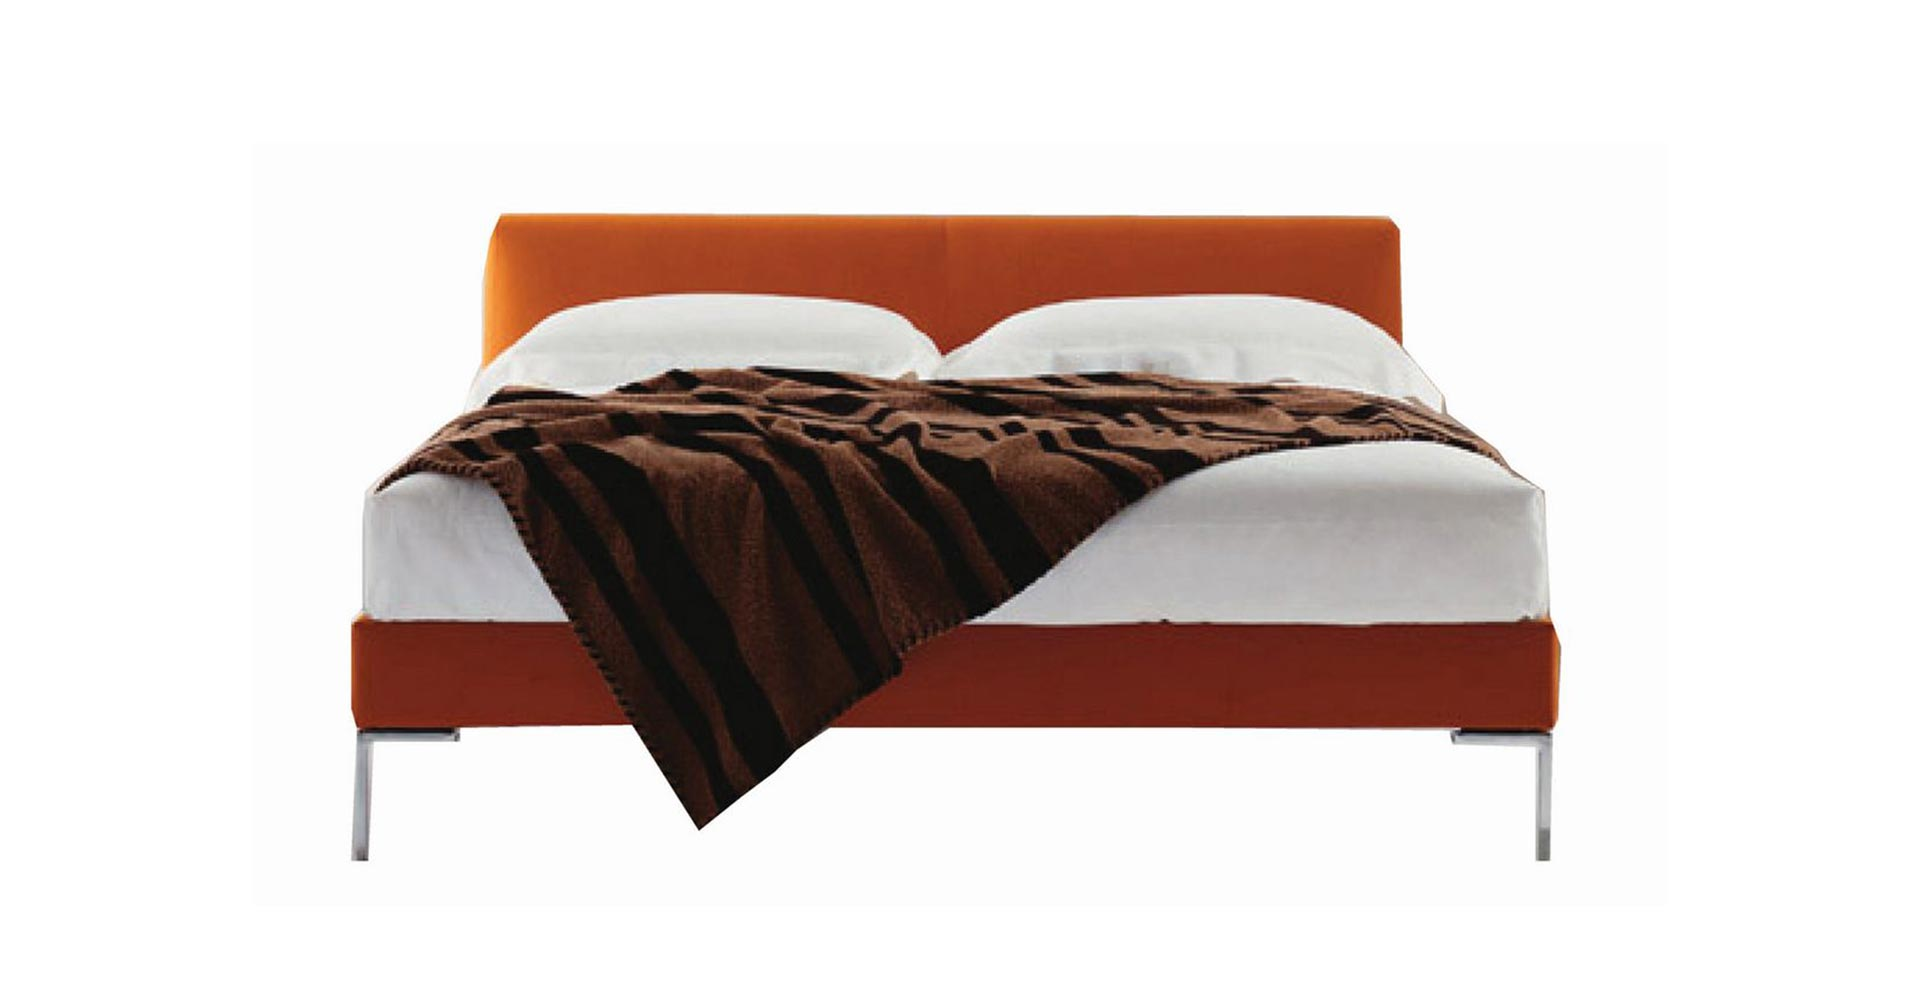 Charles bed b b italia bed canasta b b italia for B and b italia beds